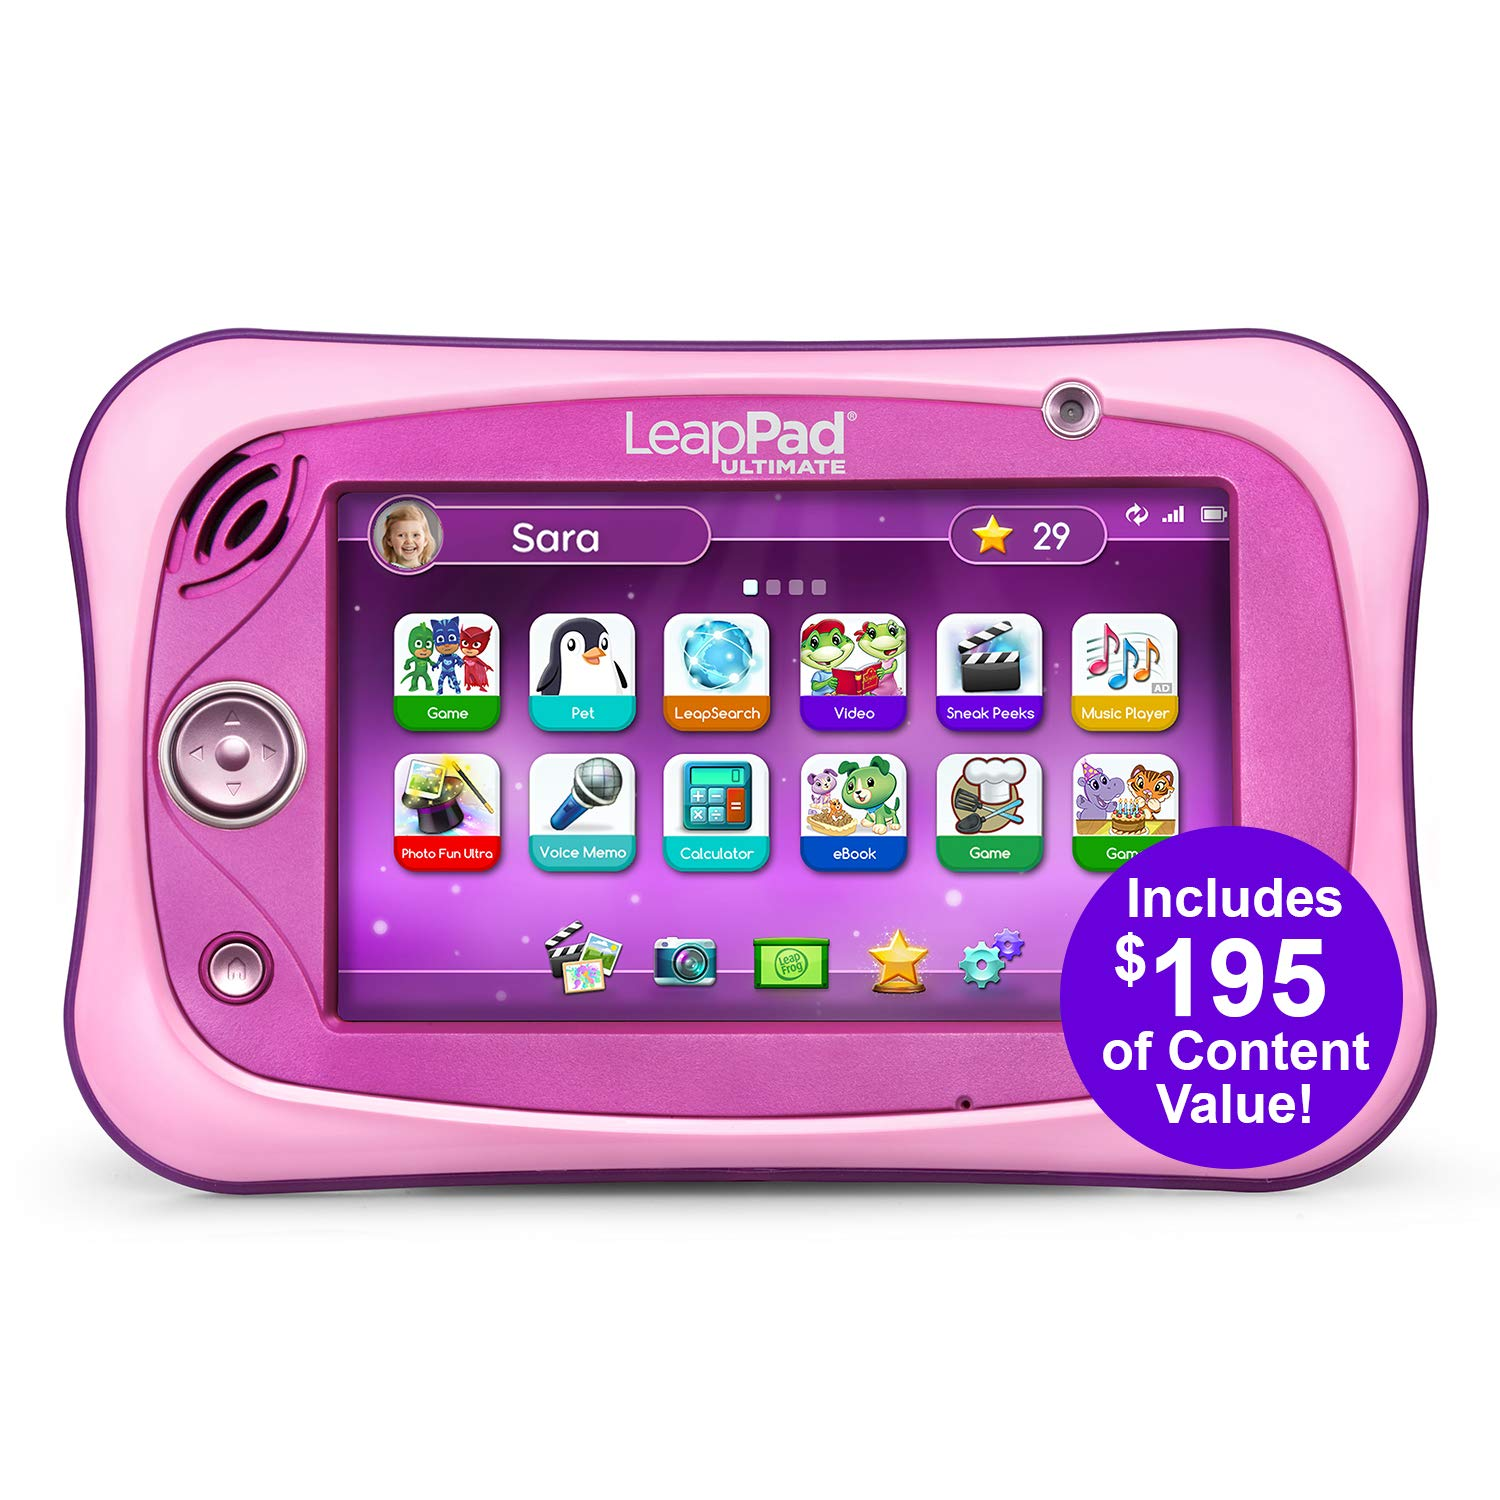 LeapFrog LeapPad Ultimate Ready for School Tablet, Pink by LeapFrog